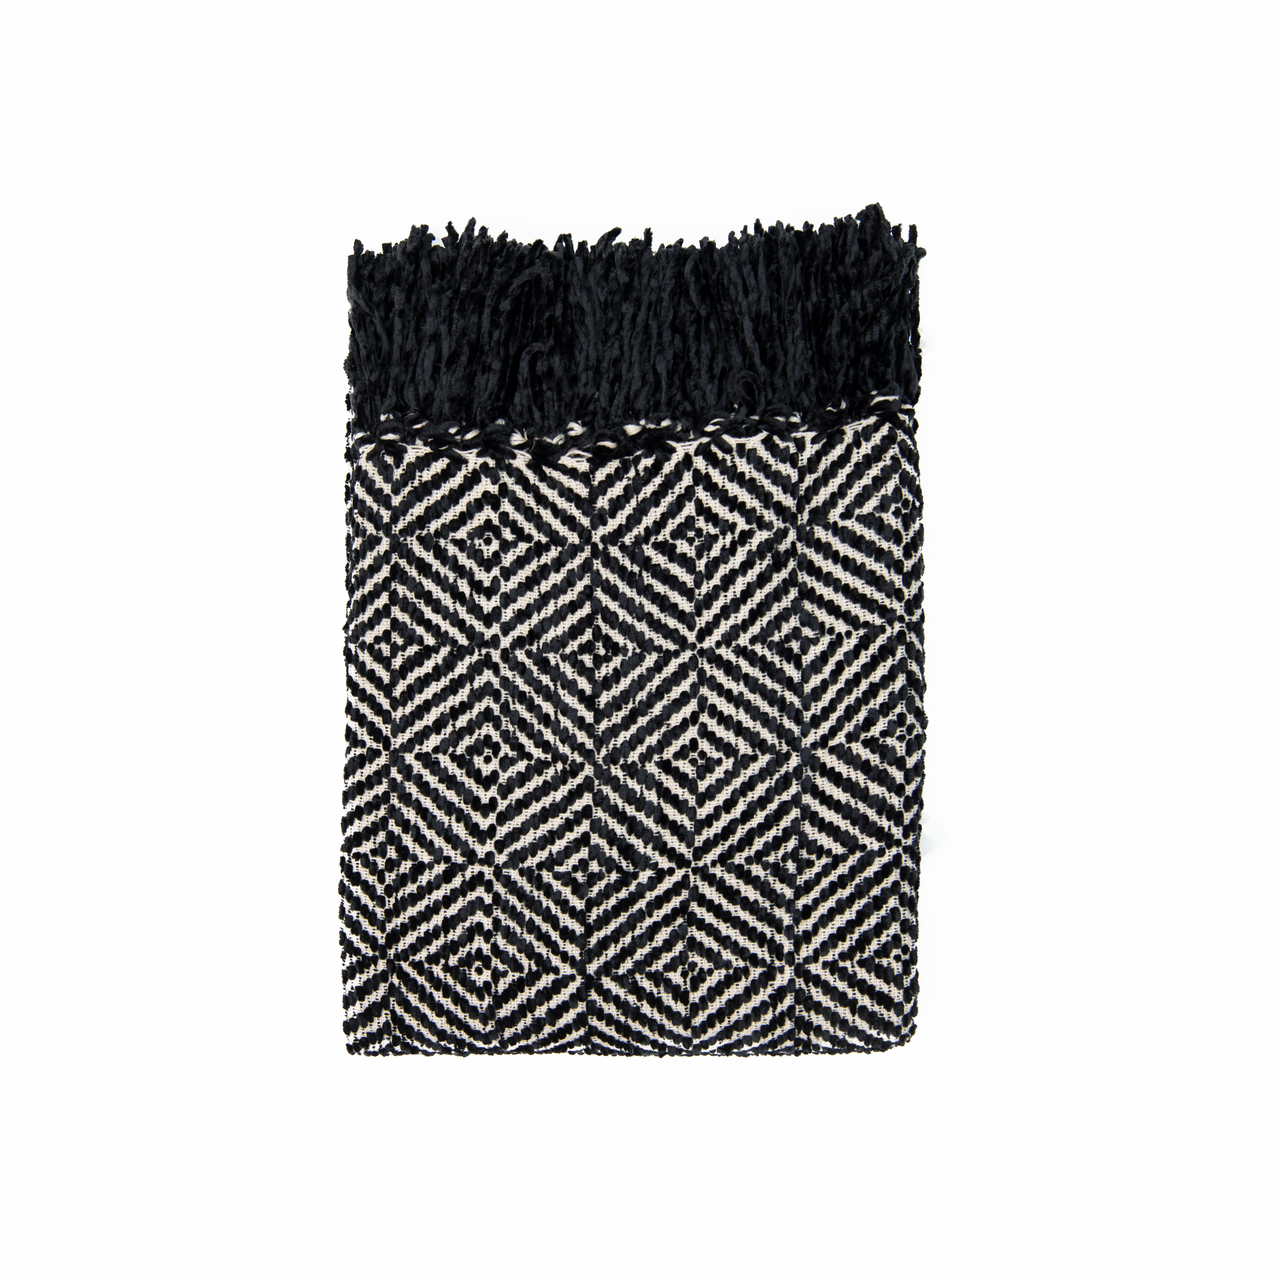 In 2 Linen Stanford Chenille Throw Rug Black